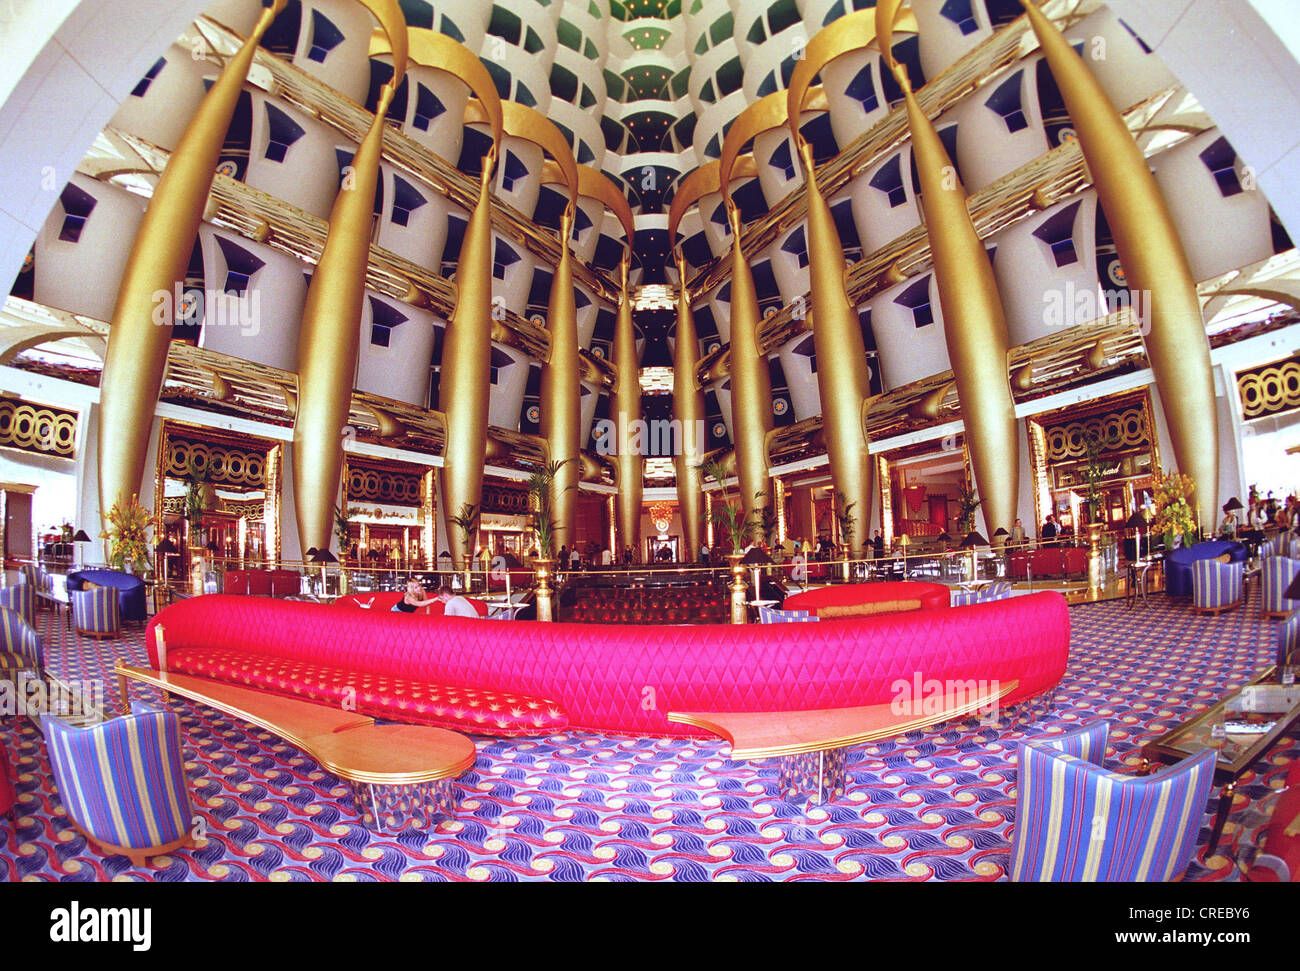 Burj al arab the most expensive hotel in the world dubai for World expensive hotel in dubai